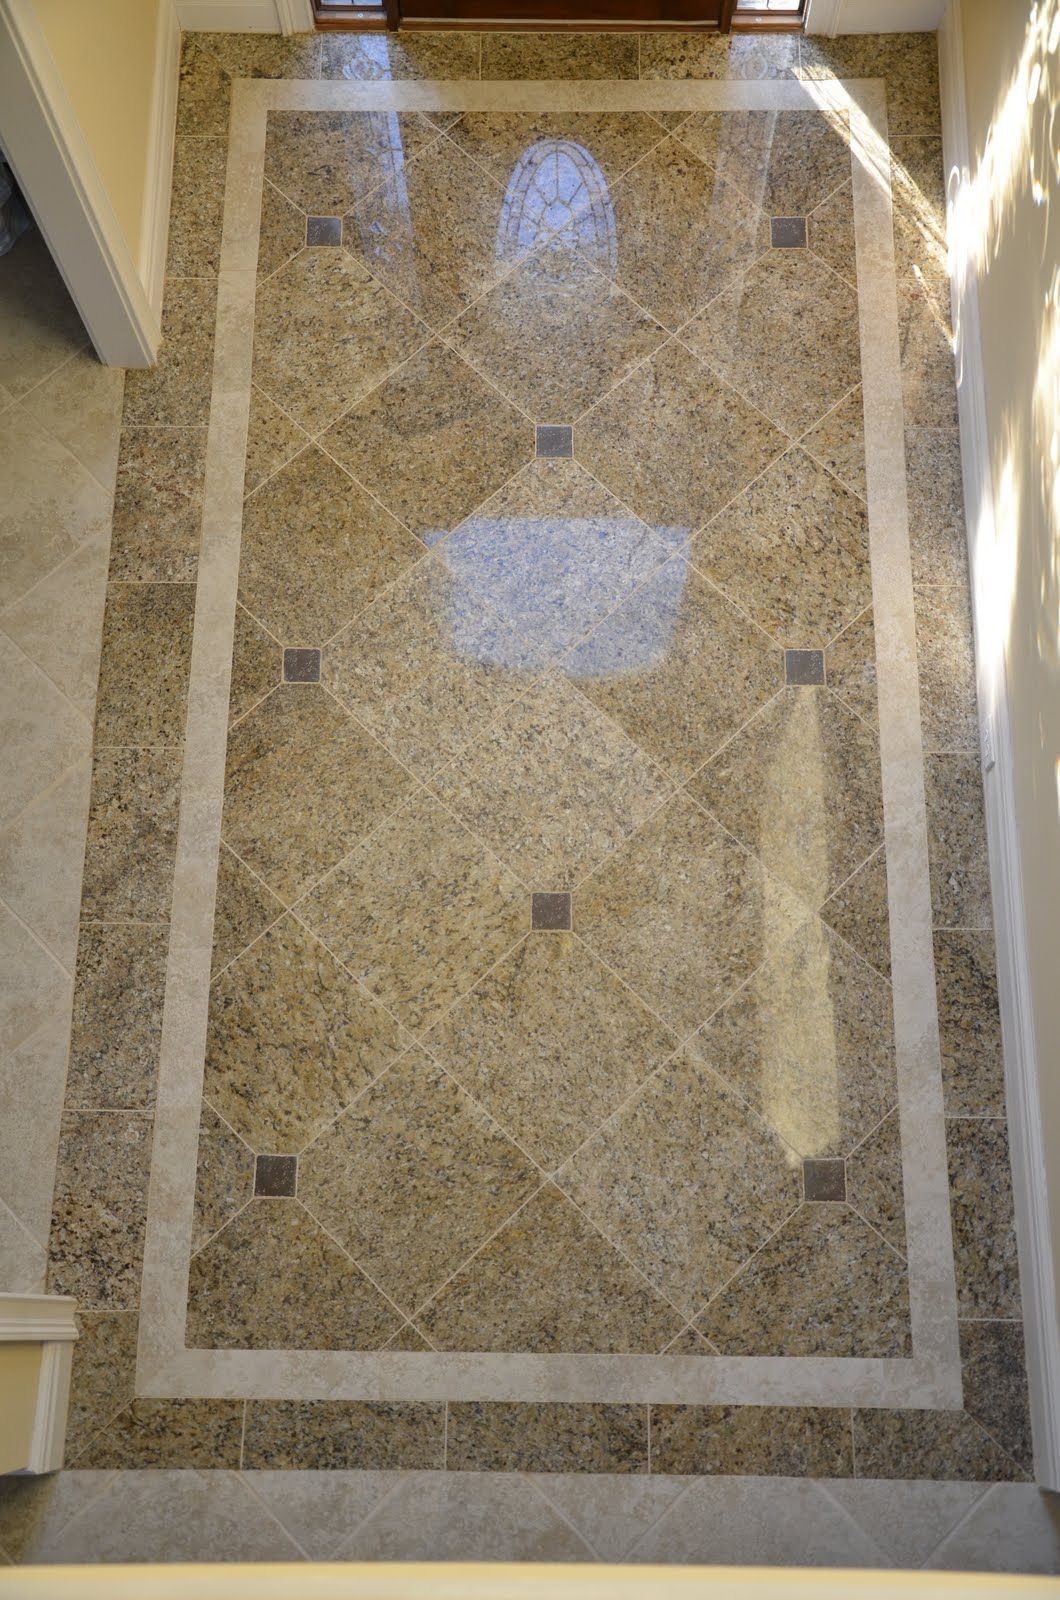 foyer floor tile design ideas small entryway tile - Tile Floor Design Ideas